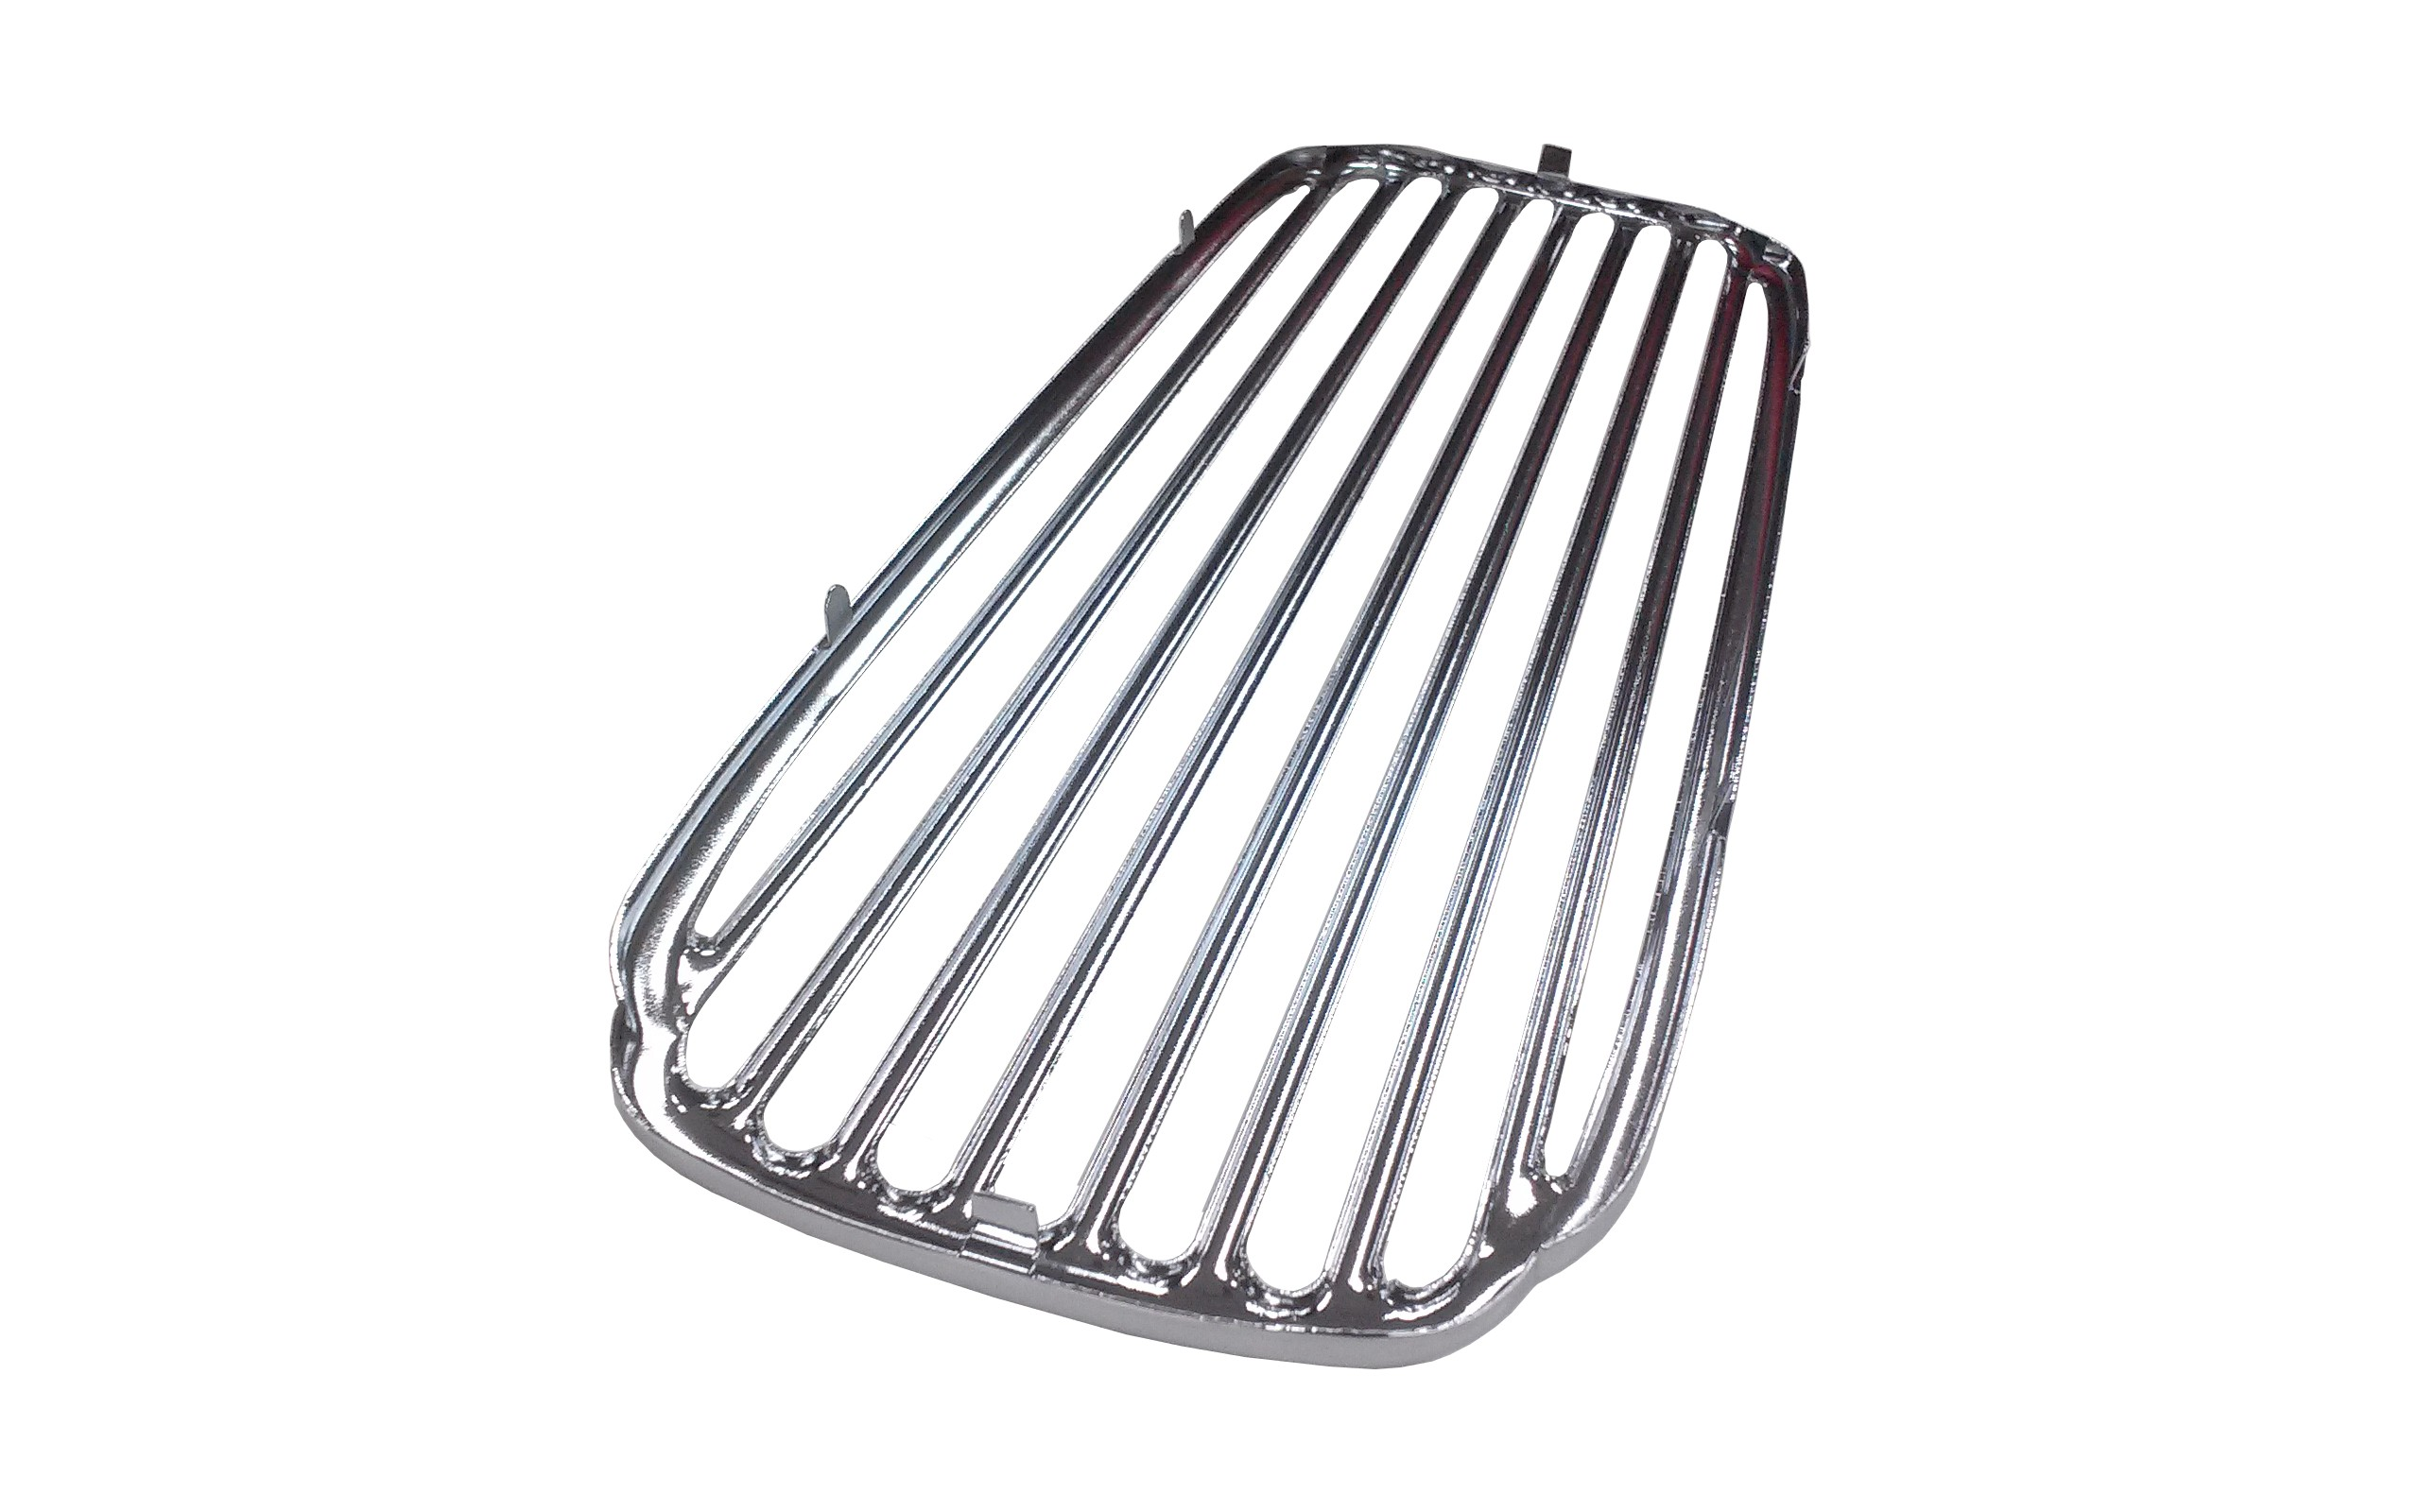 Vw Oval Dash Speaker Grill W Screen Chrome Fits Up To